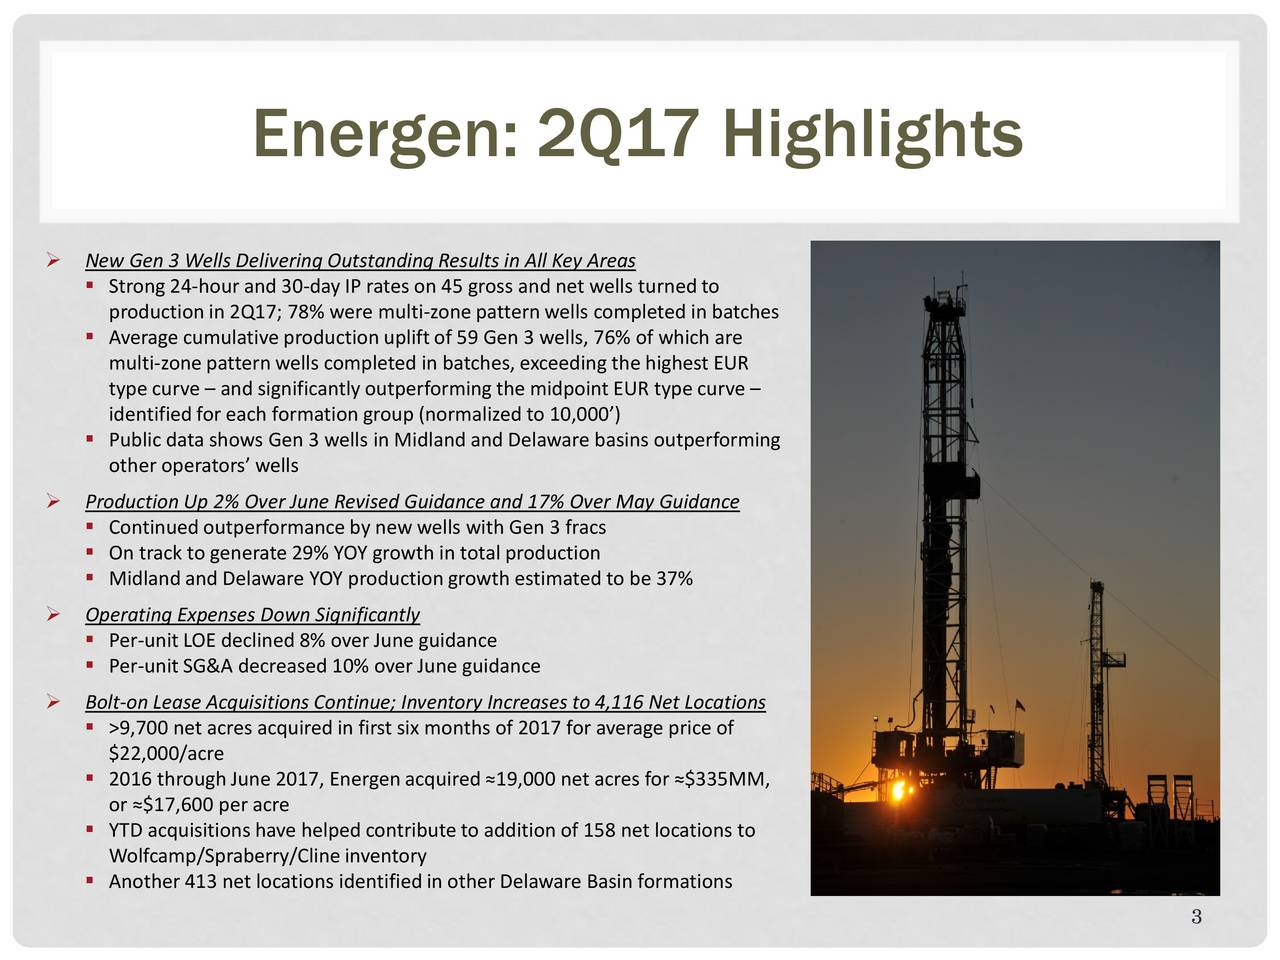 New Gen 3 Wells Delivering Outstanding Results in All Key Areas Strong 24-hour and 30-day IP rates on 45 gross and net wells turnedto productionin 2Q17; 78% were multi-zone pattern wells completed in batches Average cumulative productionupliftof 59 Gen 3 wells, 76% of which are multi-zone pattern wells completed in batches, exceeding the highest EUR type curve  and significantly outperforming the midpoint EUR type curve identified for each formation group (normalized to 10,000) Public data shows Gen 3 wells in Midland and Delaware basins outperforming other operators wells Production Up 2% Over June Revised Guidance and 17% Over May Guidance Continuedoutperformance by new wells with Gen 3 fracs On track to generate 29% YOY growth in total production Midlandand Delaware YOY productiongrowth estimated to be 37% Operating Expenses Down Significantly Per-unit LOE declined 8% over June guidance Per-unitSG&A decreased 10% over June guidance Bolt-on Lease Acquisitions Continue; Inventory Increases to 4,116 Net Locations >9,700 net acres acquired in first six months of 2017 for average price of $22,000/acre 2016 throughJune 2017, Energenacquired19,000 net acres for $335MM, or $17,600 per acre YTD acquisitions have helped contribute to addition of 158 net locations to Wolfcamp/Spraberry/Cline inventory Another413 net locations identifiedin other Delaware Basin formations 3